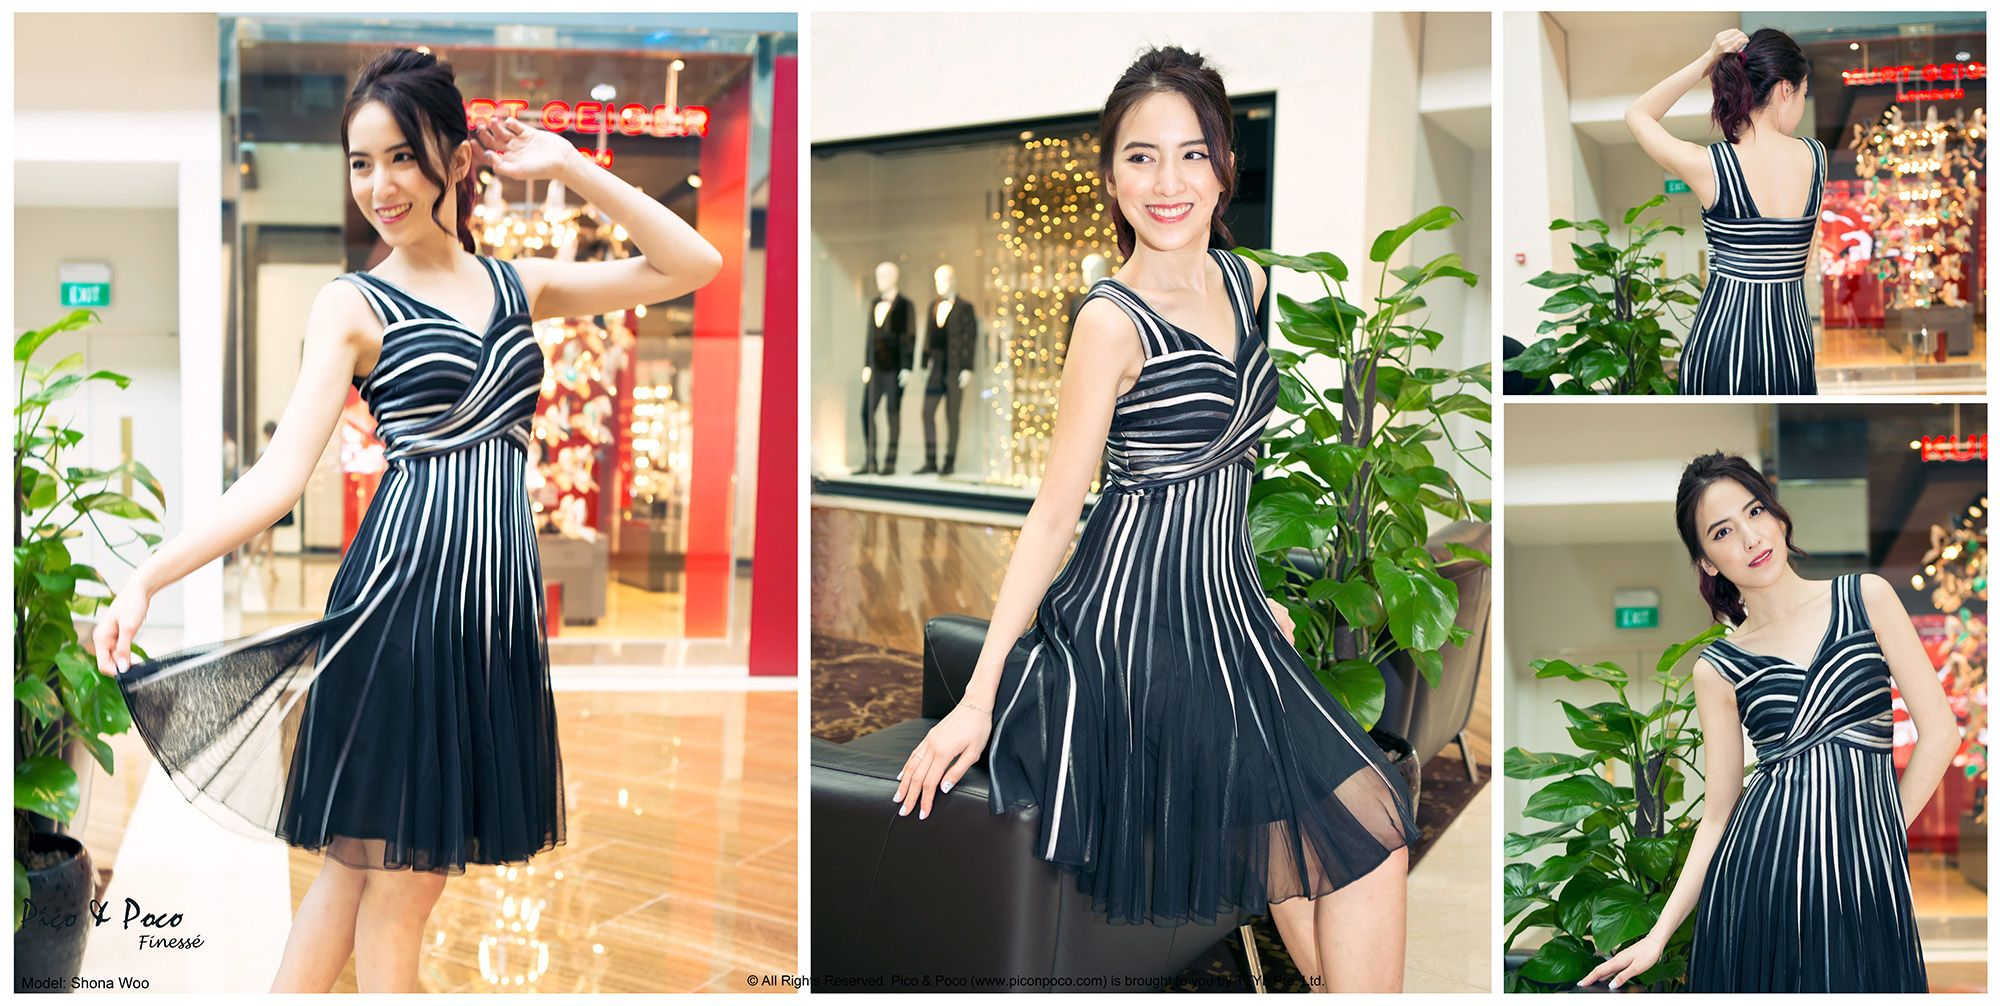 Black dress with blue and silver stripes sewn on tulle netting